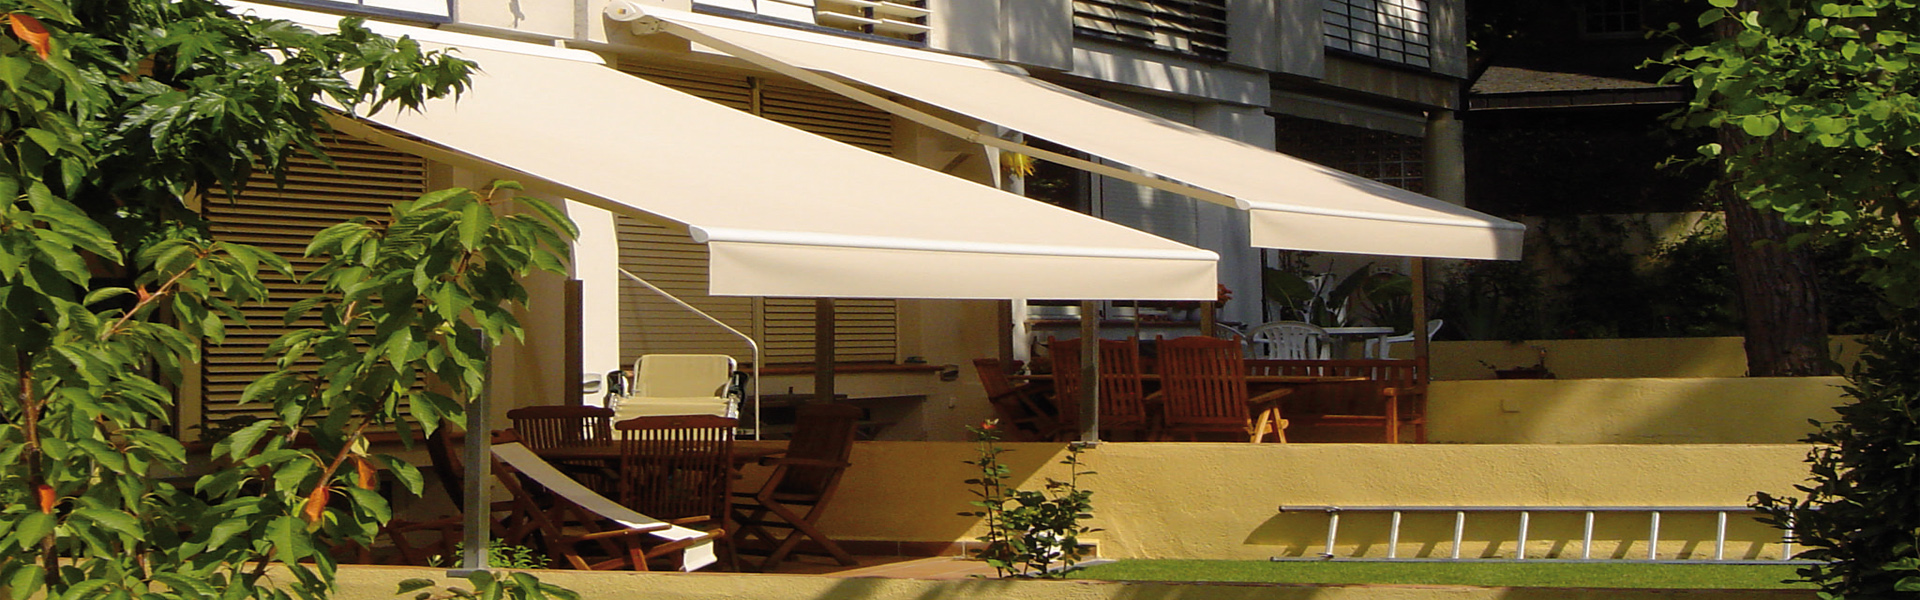 <h2>Shading systems - Awnings - PEGASUS</h2><p>Long experience, excellent quality, affordable prices in Nikiti, Chalkidiki</p><div class='bgslideshowmore'><a href='http://www.tenteshalkidiki.4ty.gr/more.php?l=en' >More...</a></div>